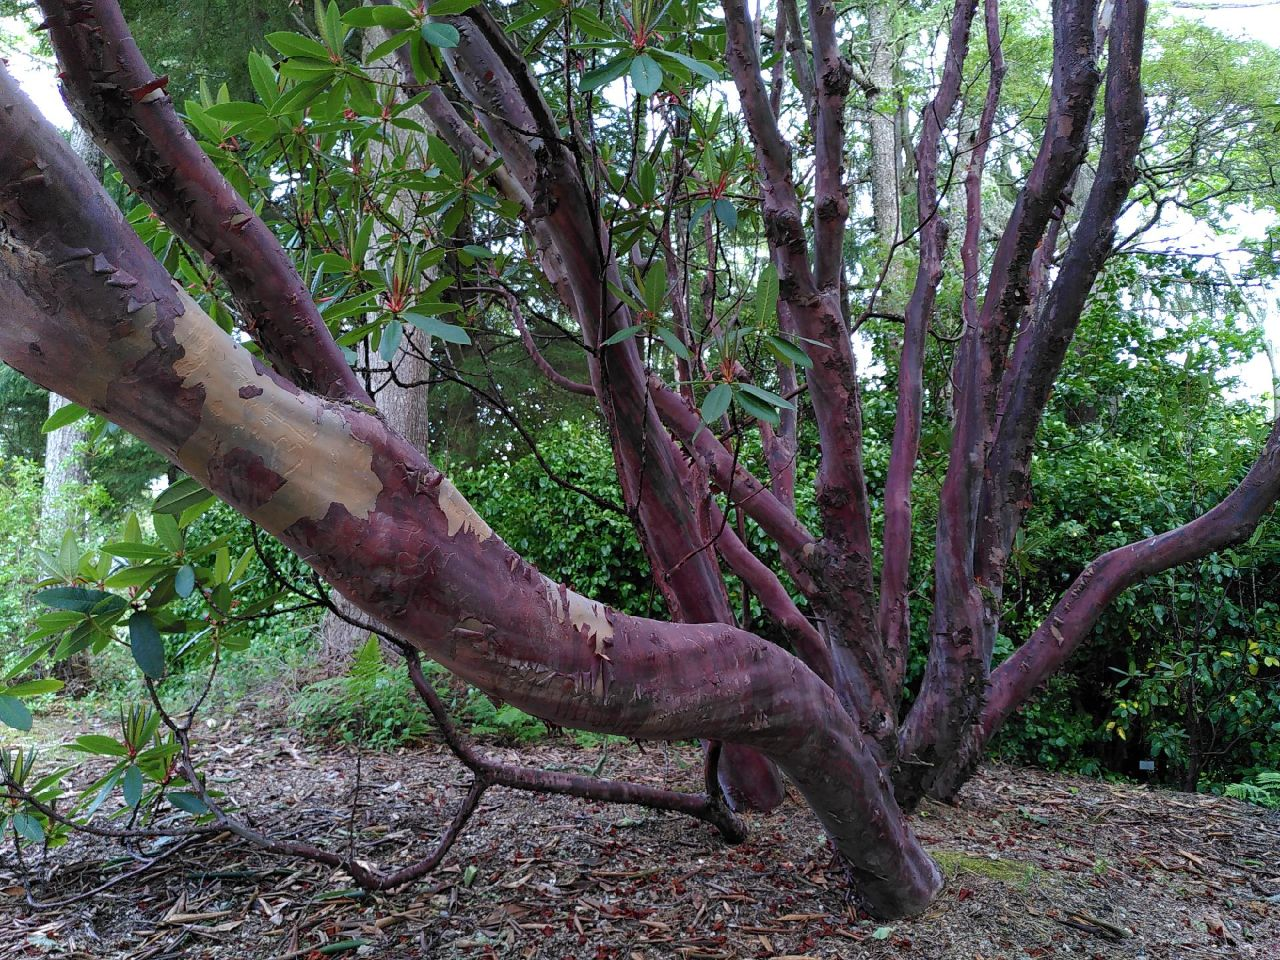 a think branch of a rhody leans toward the screen. The branch is a smooth, dark, red. Its bark appears papery and some has been removed.